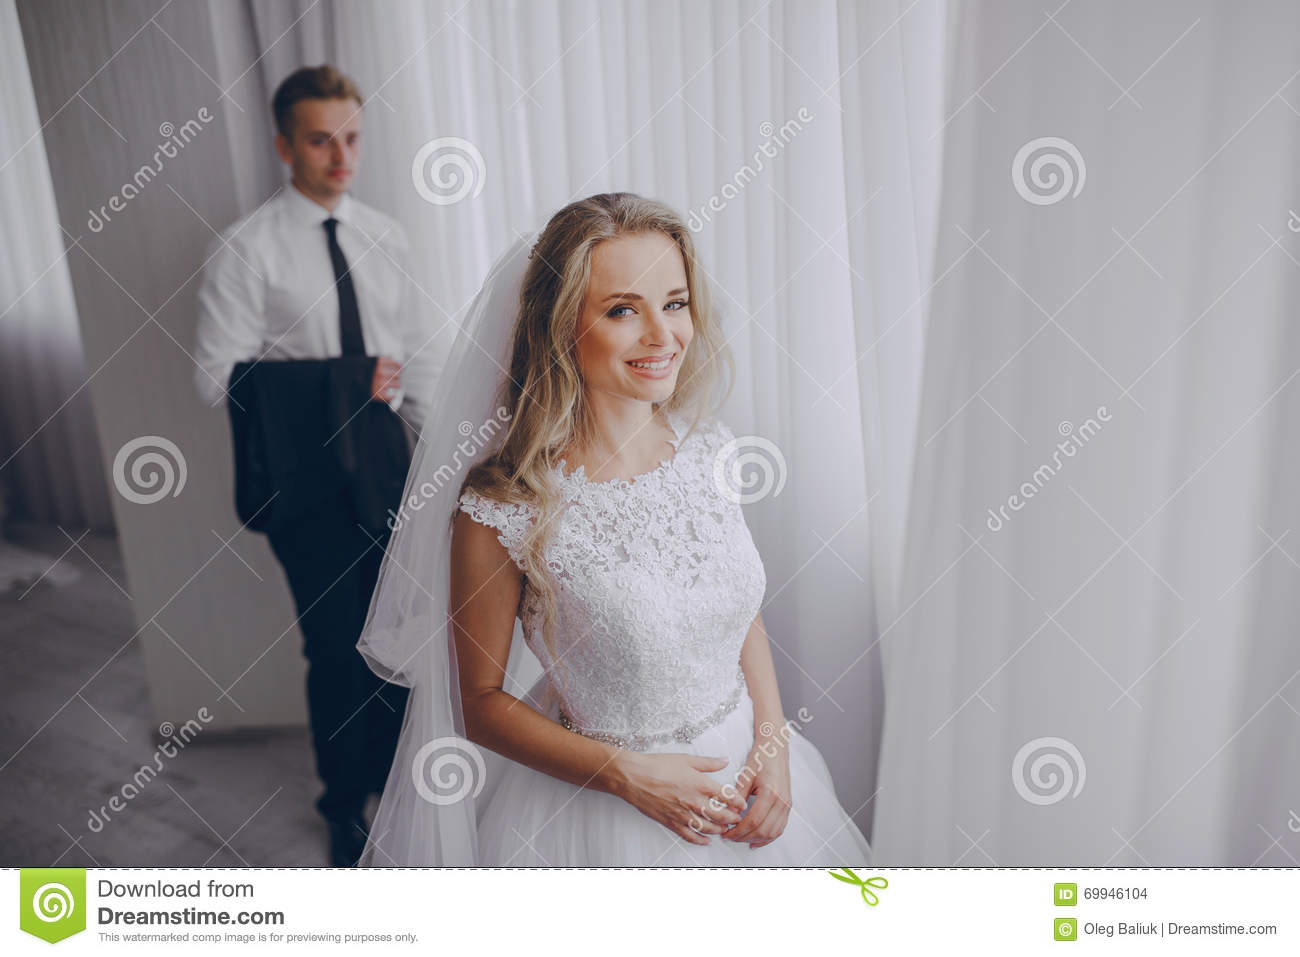 Are not young beautiful bride preparing interesting